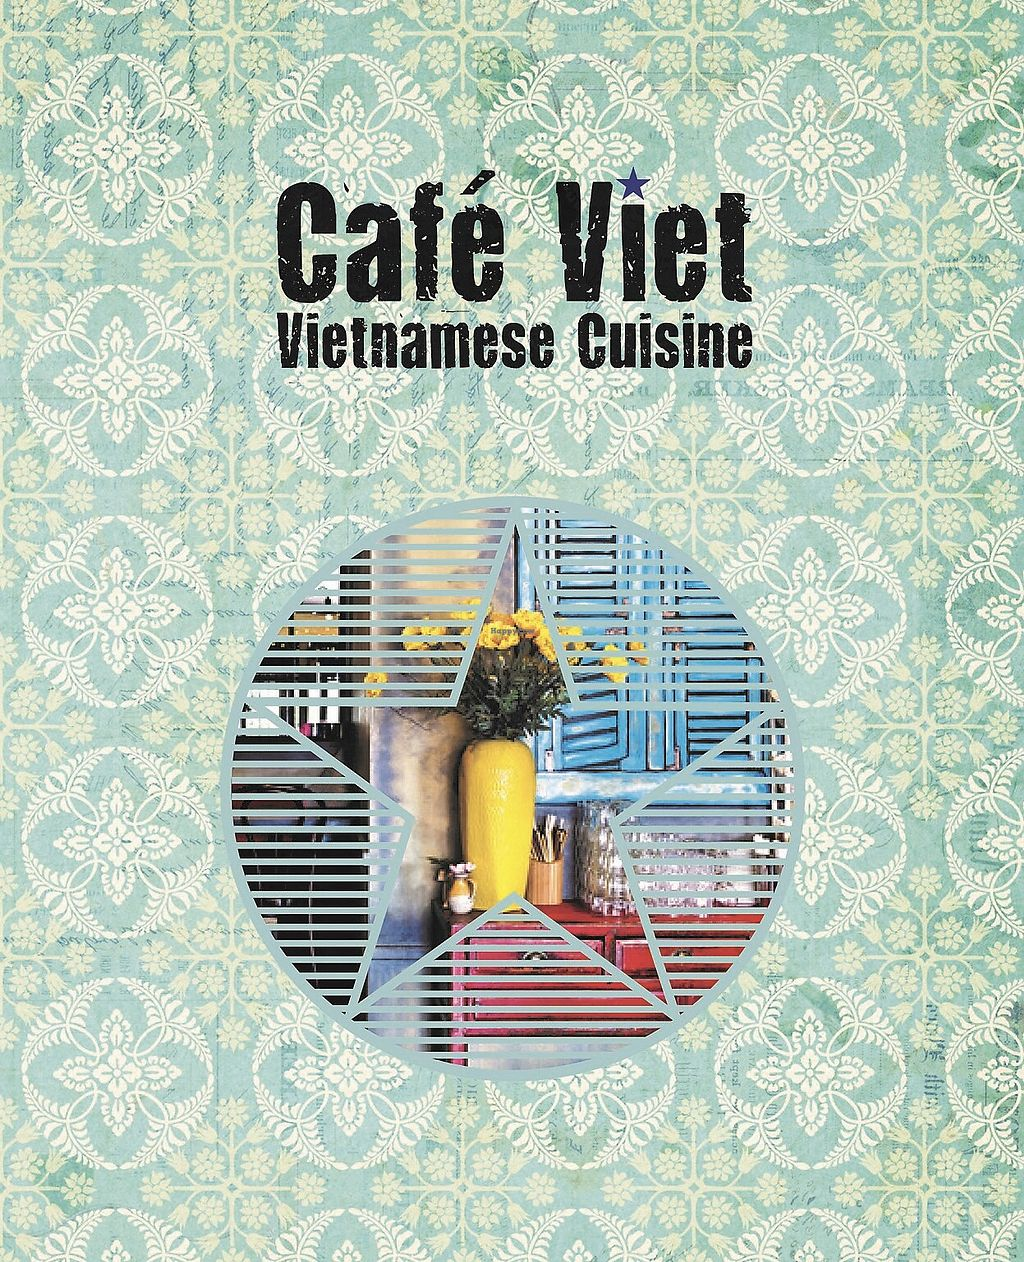 """Photo of Cafe Viet  by <a href=""""/members/profile/Ripley77"""">Ripley77</a> <br/>Café Viet Grey Lynn <br/> January 30, 2018  - <a href='/contact/abuse/image/110459/352635'>Report</a>"""